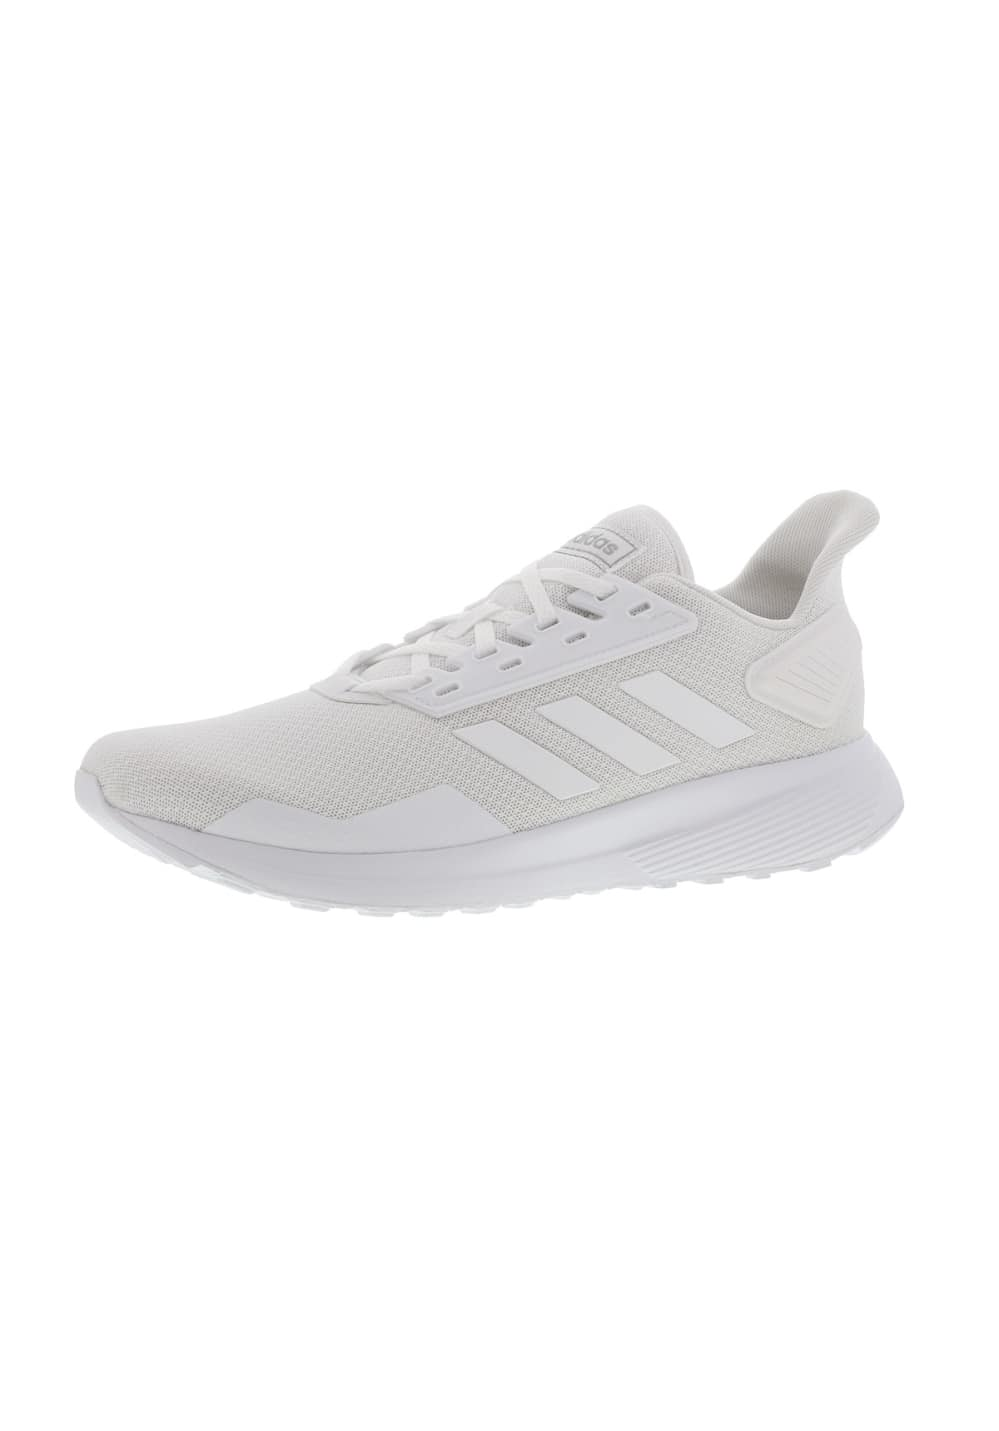 on sale 150ab 728d6 adidas Duramo 9 - Running shoes for Men - White  21RUN